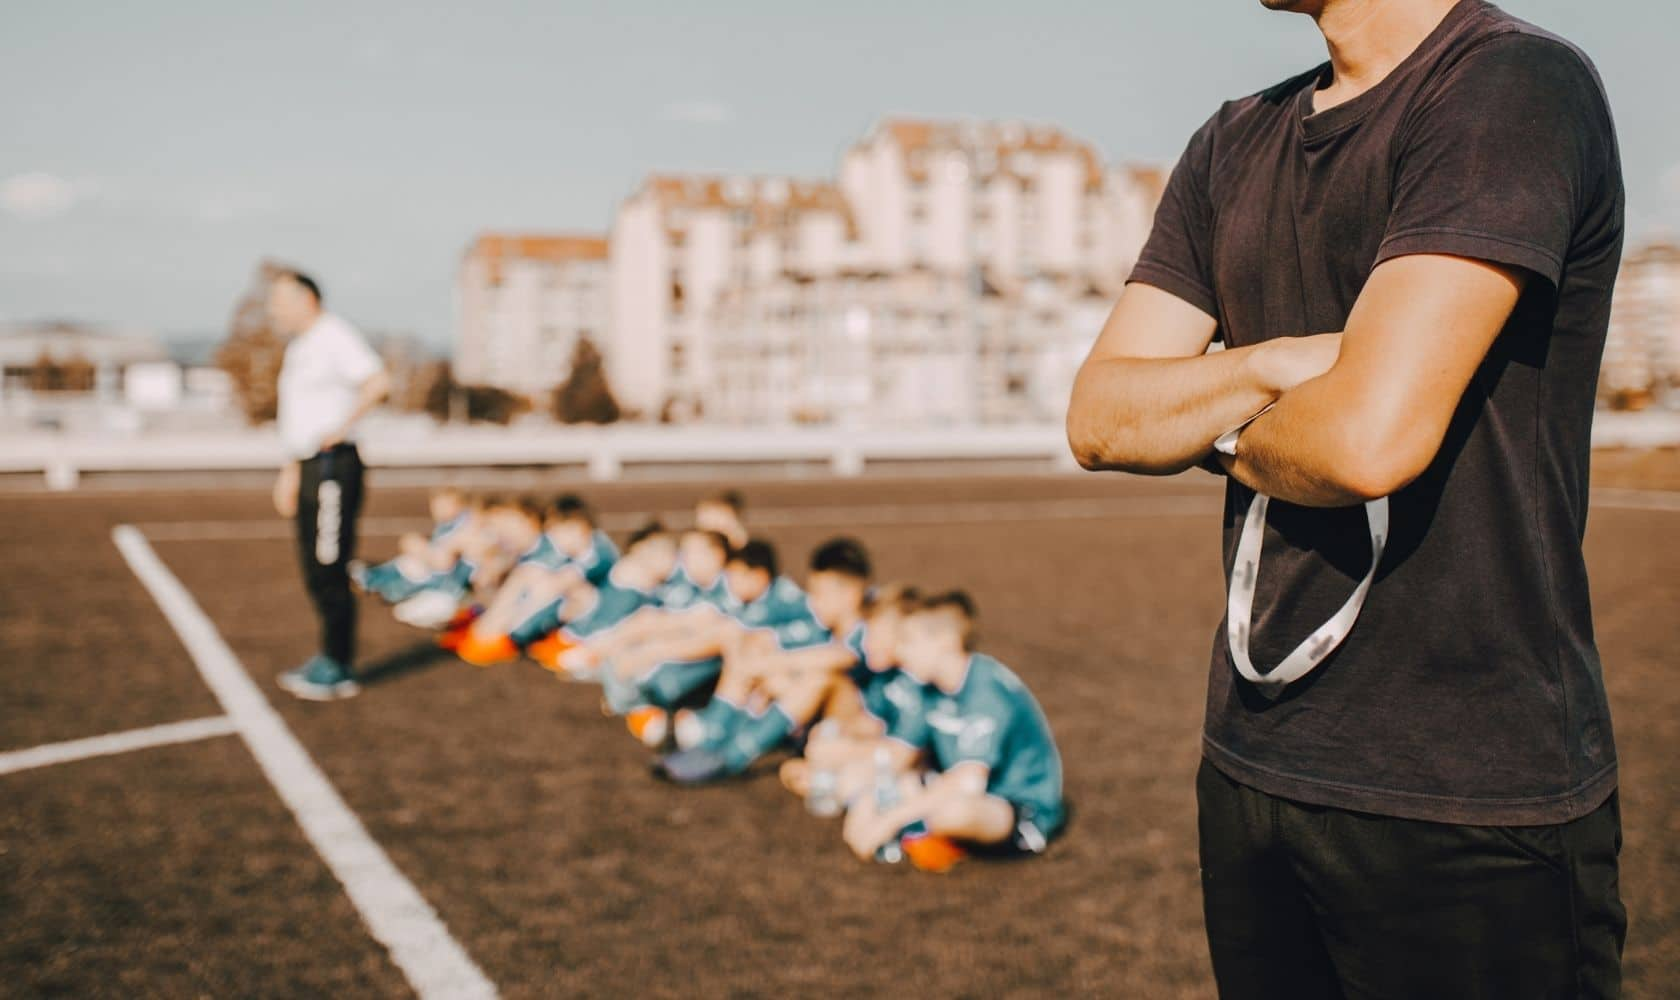 Read an expert guide on the fundamentals of soccer coaching — including professional insights on session planning, delivery, and communicating with players